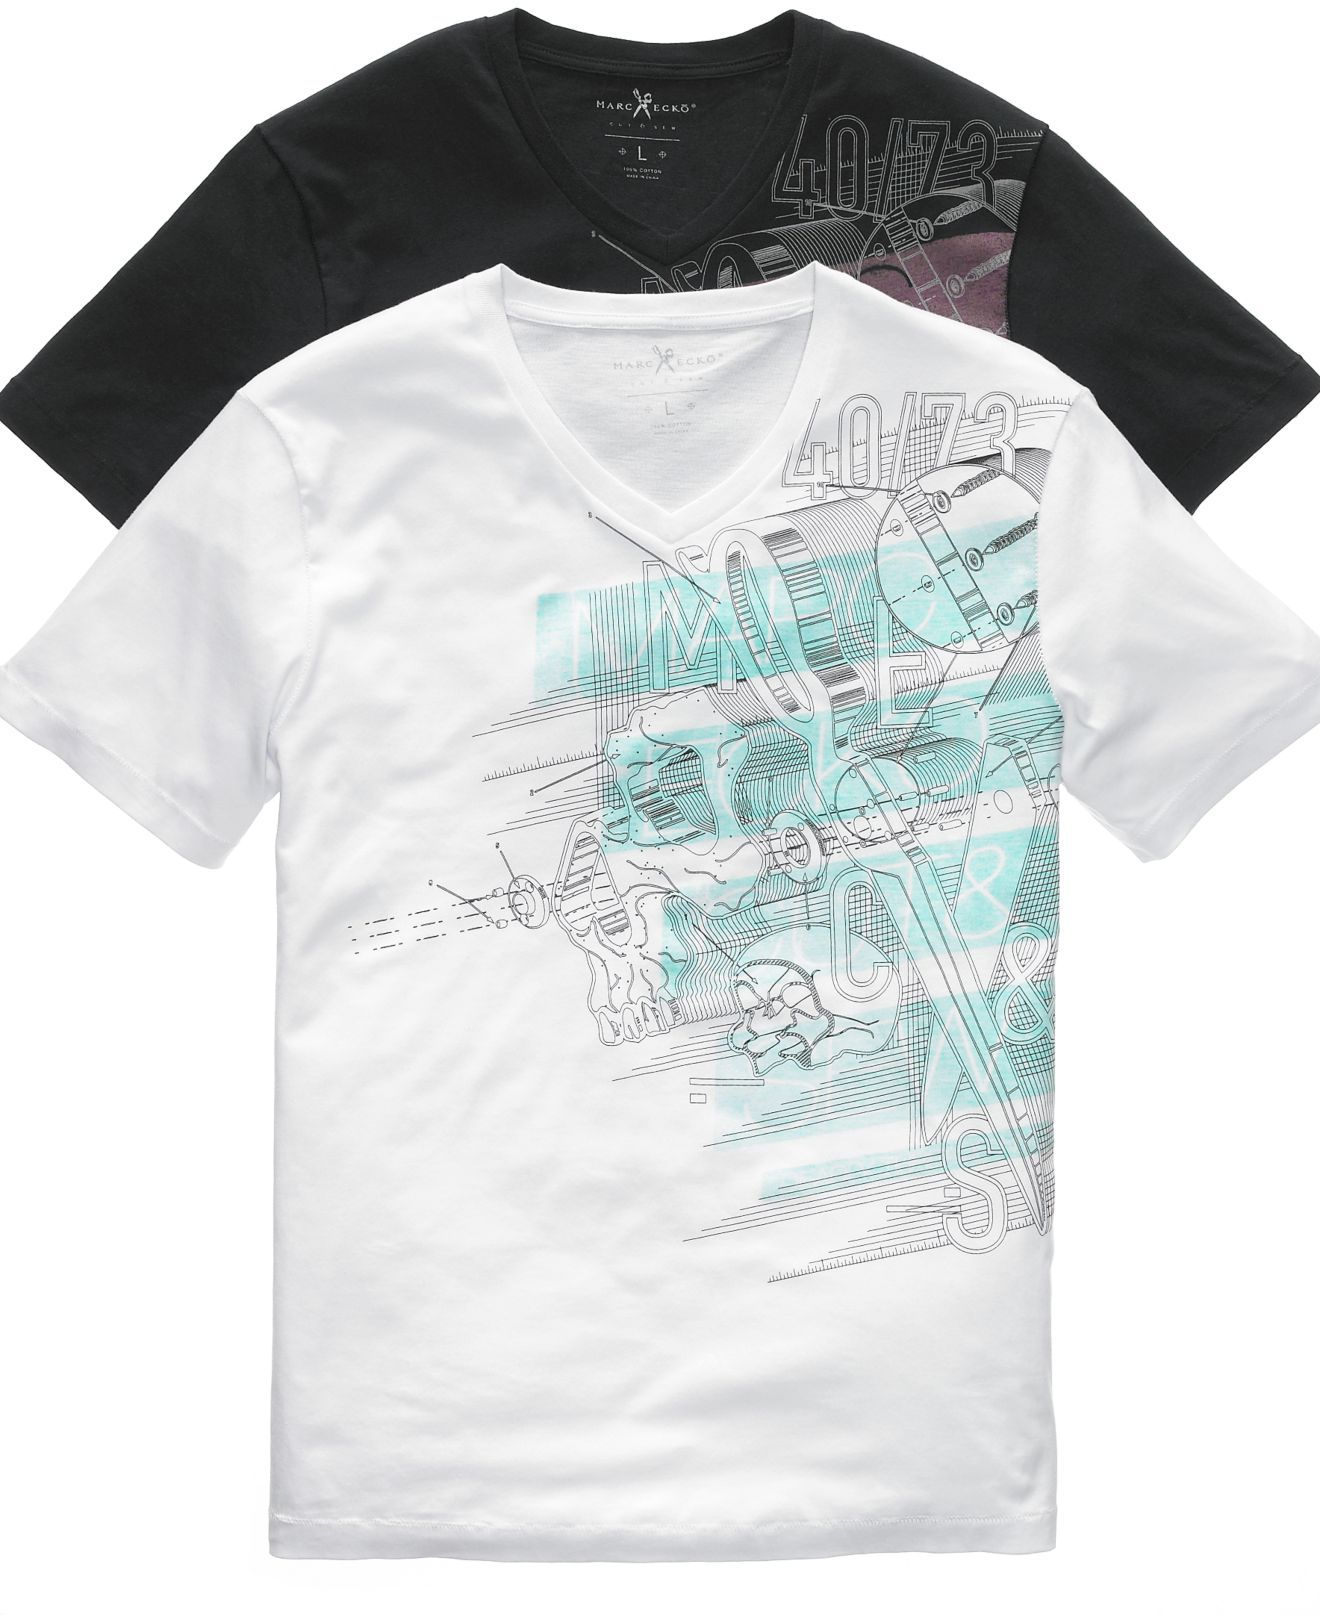 Marc ecko cut sew t shirt blueprint tee mens 2 day specials marc ecko cut sew t shirt blueprint tee macys malvernweather Choice Image